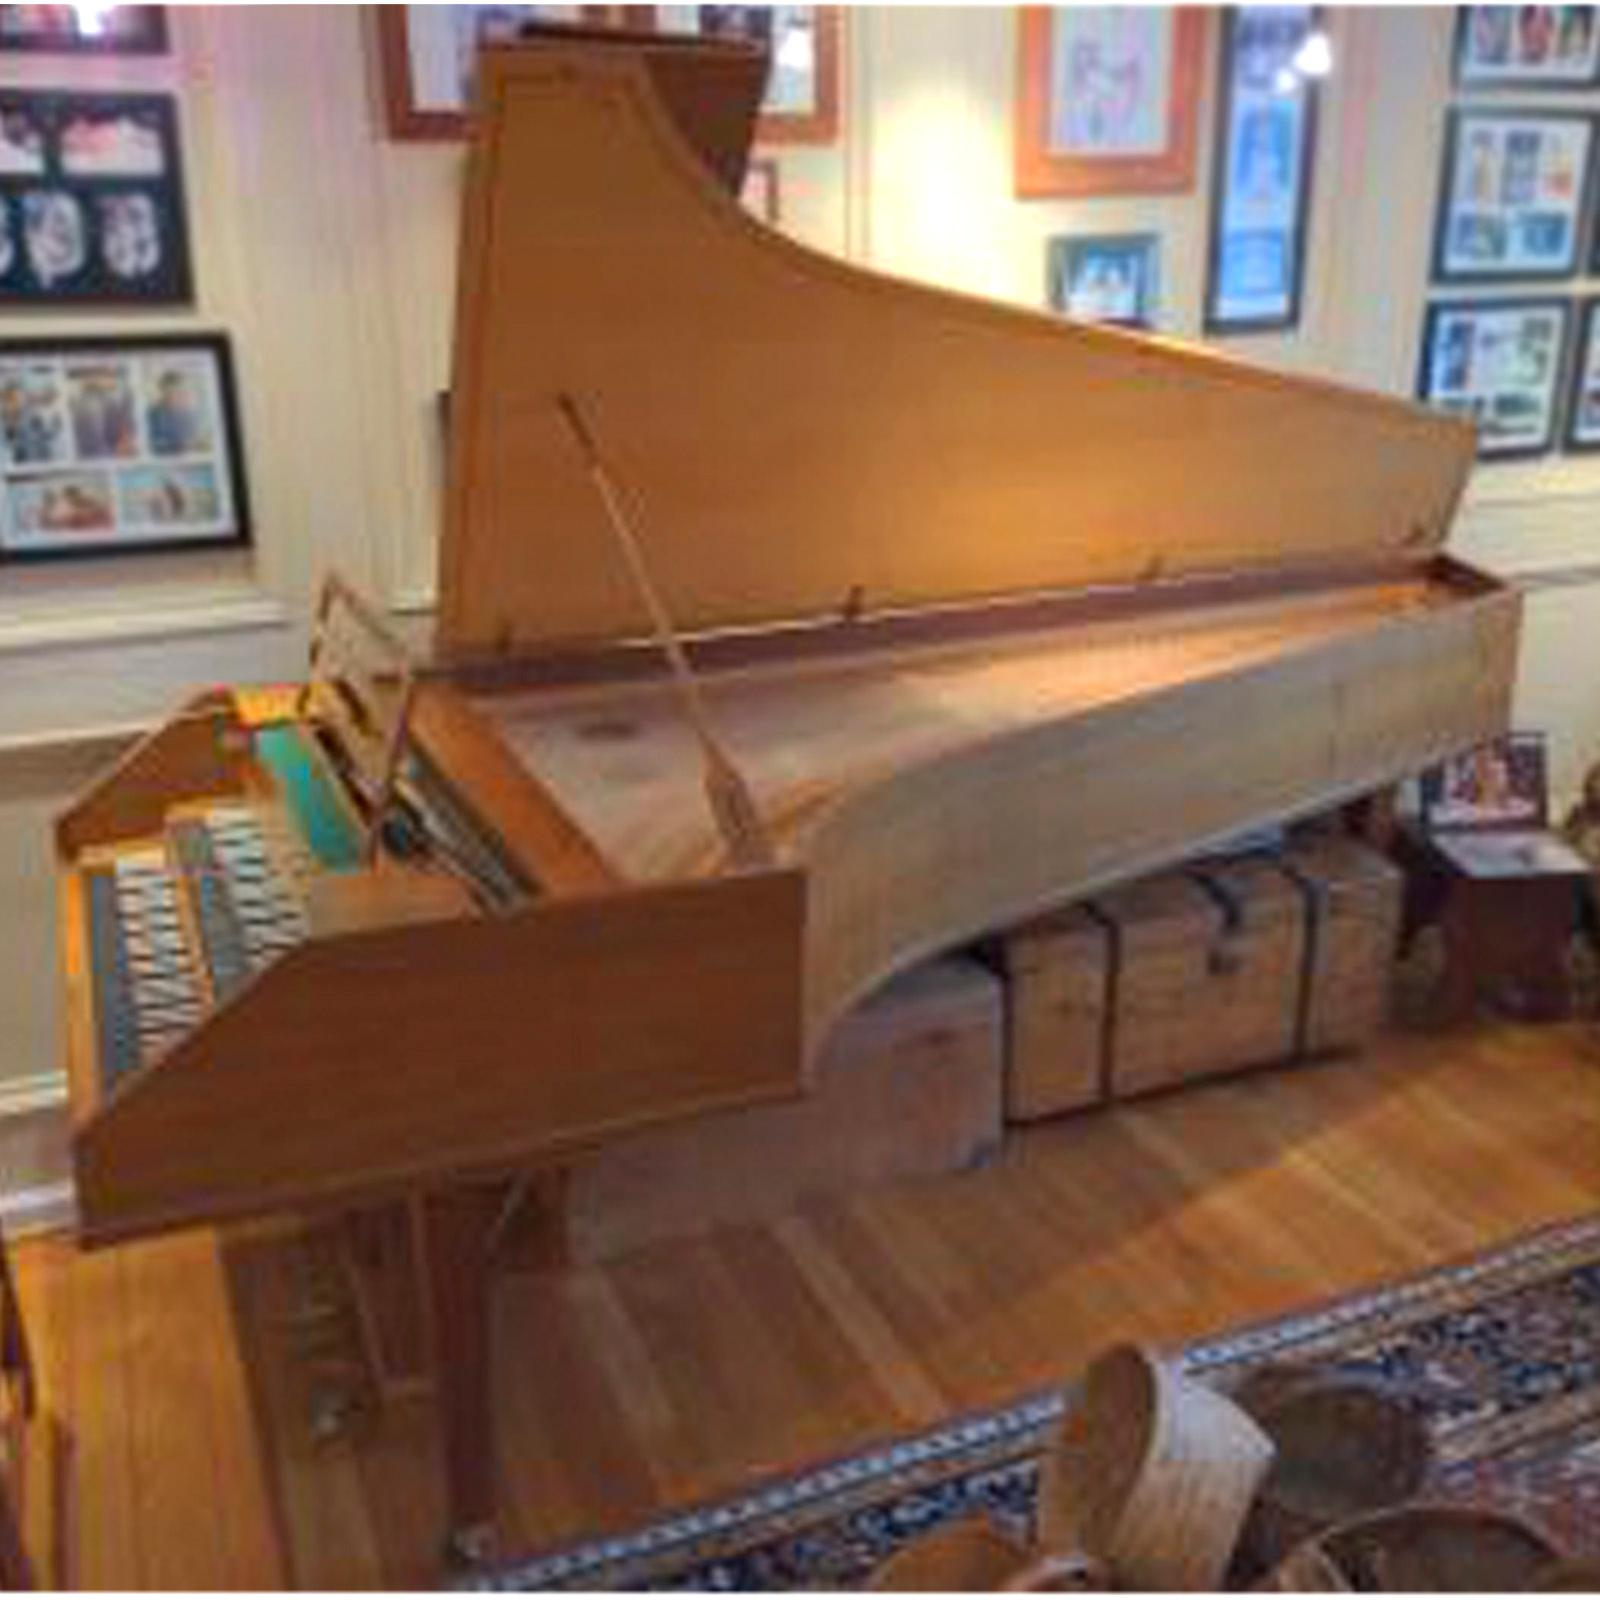 Sperrhake Passau double manual concert harpsichord, walnut case, Made in Germany, ca.1972. Single owner.